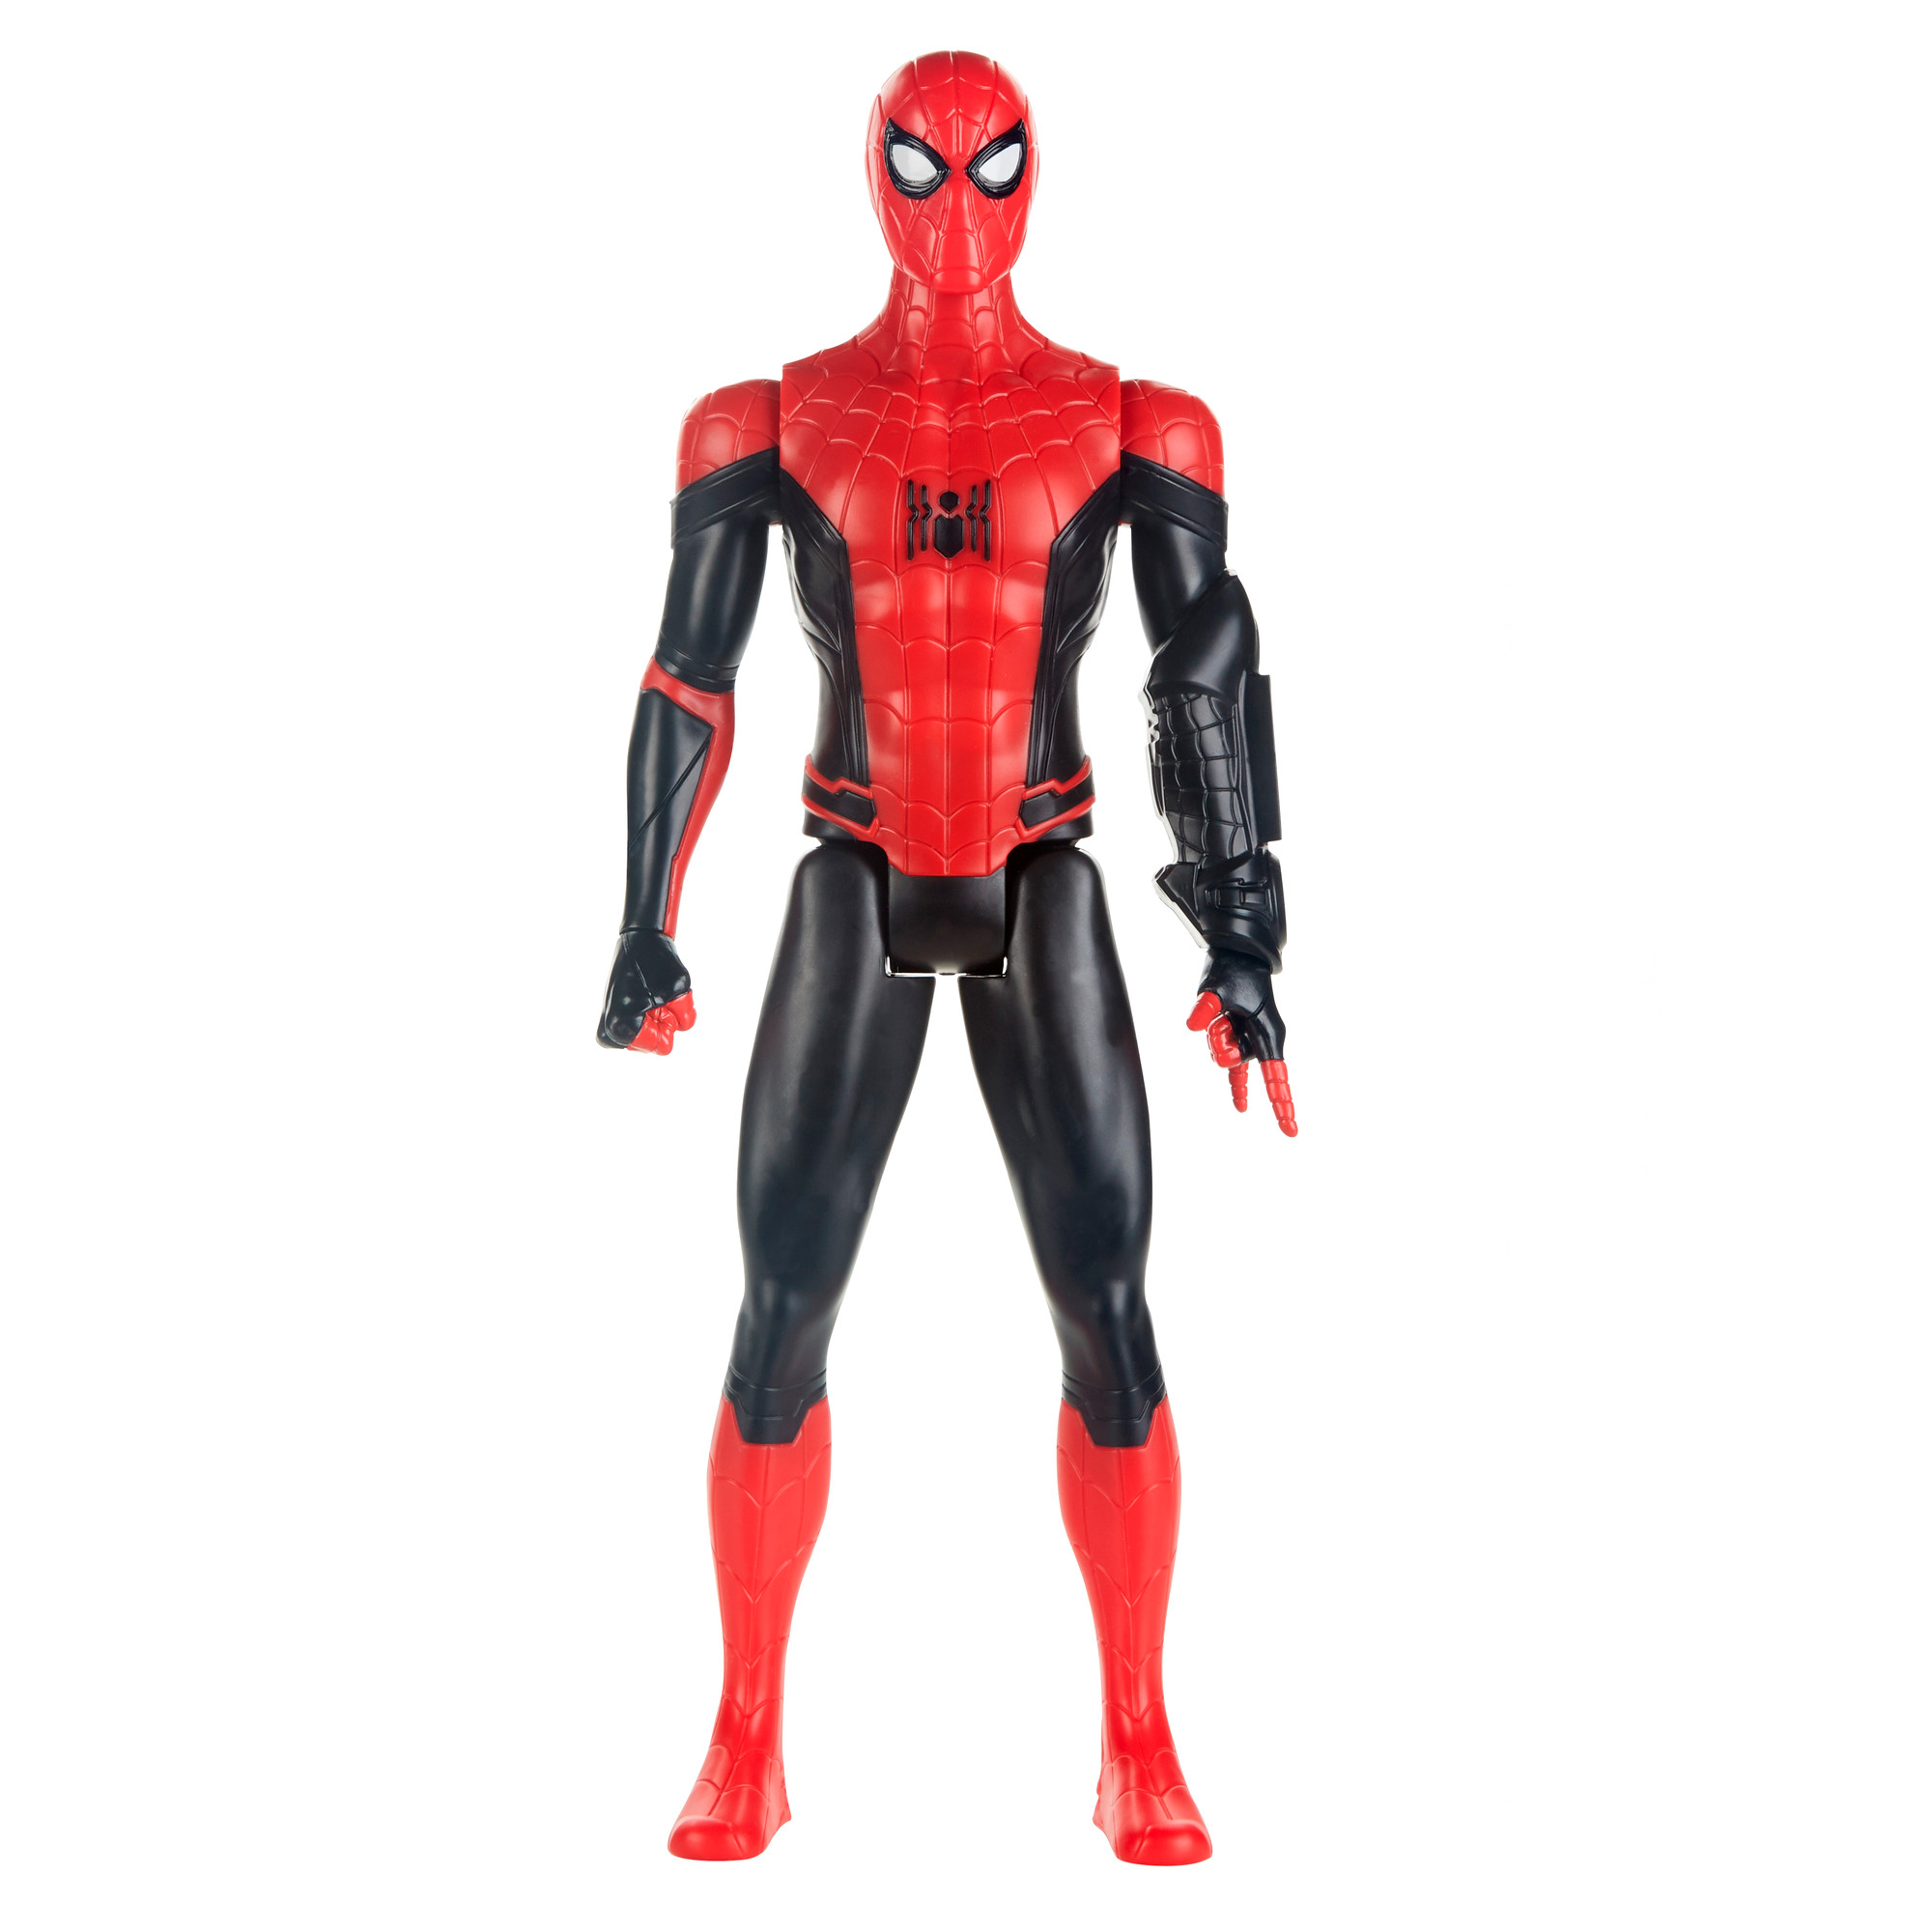 Marvel Spider-Man: Far From Home Titan Hero Series